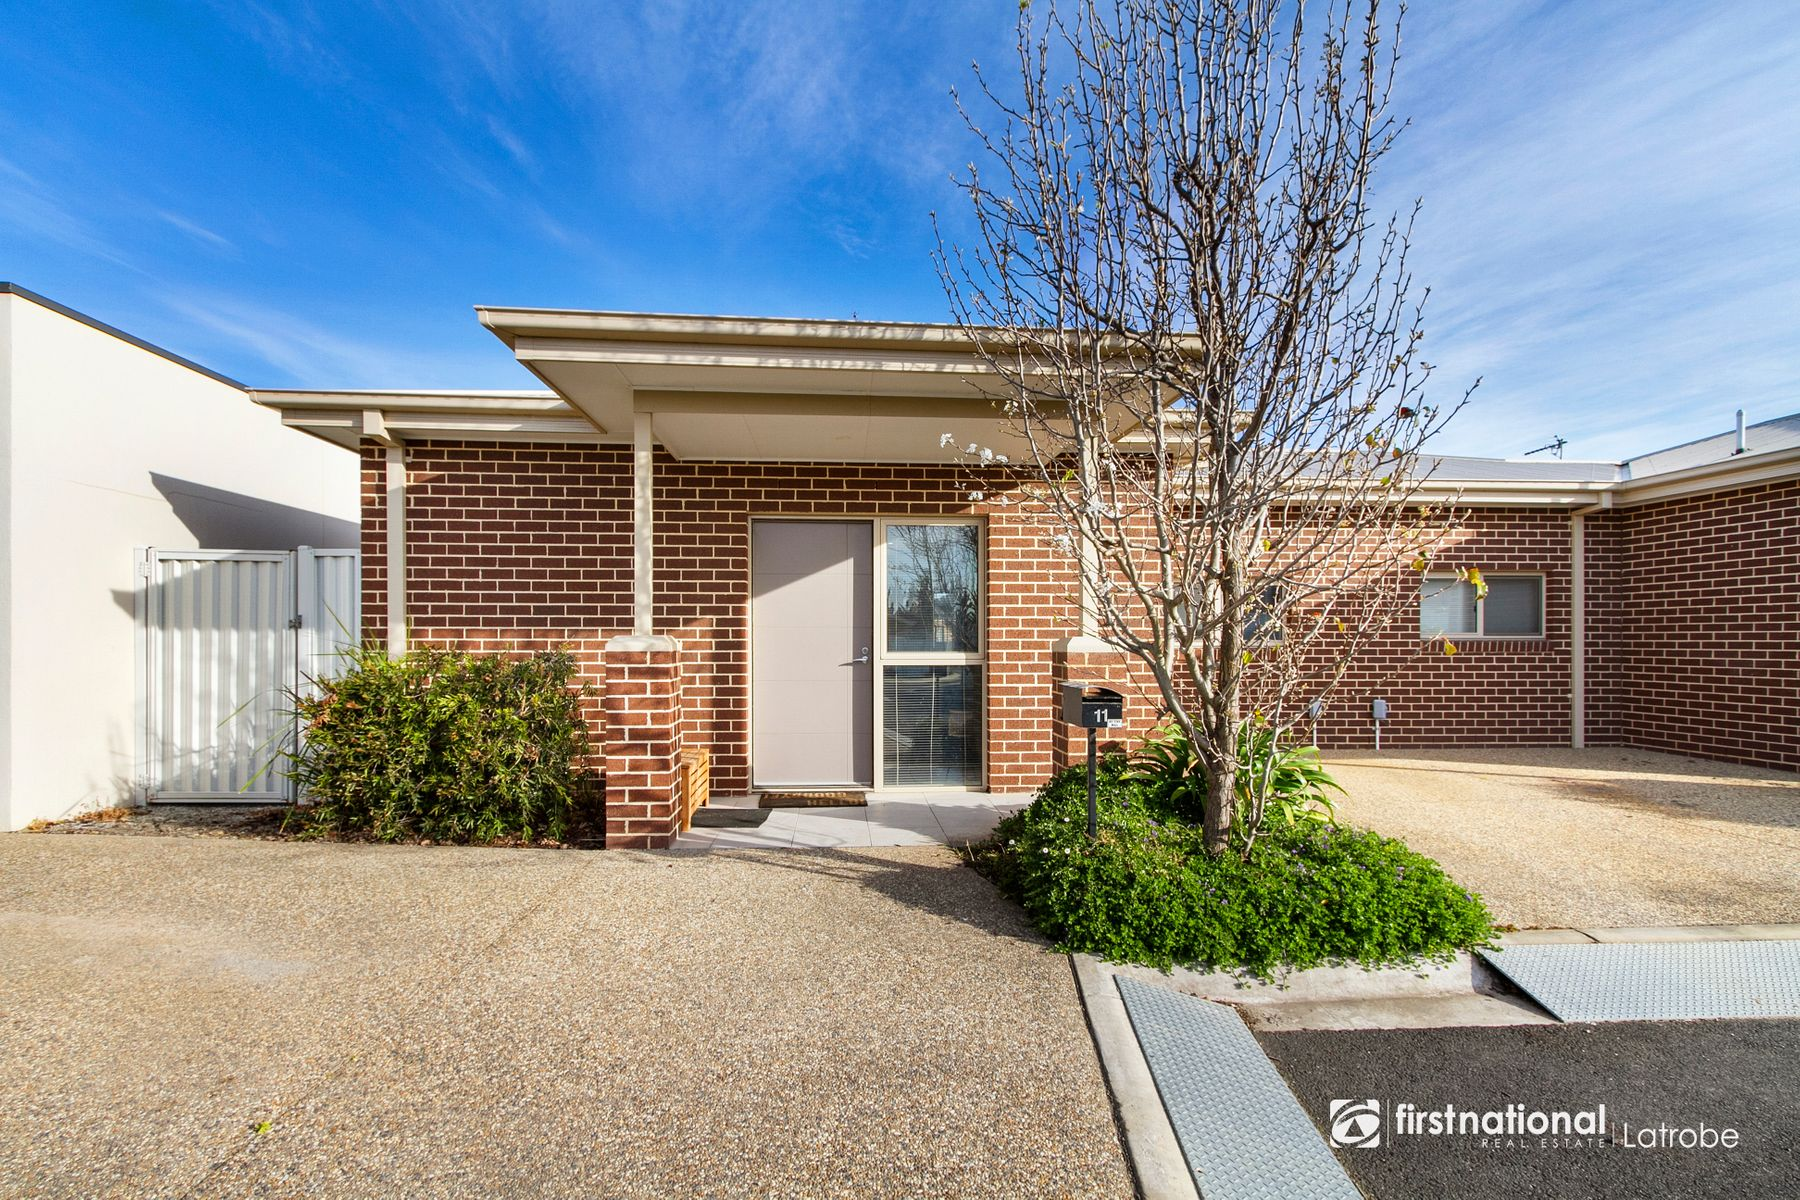 11/83 Marshalls Road, Traralgon, VIC 3844